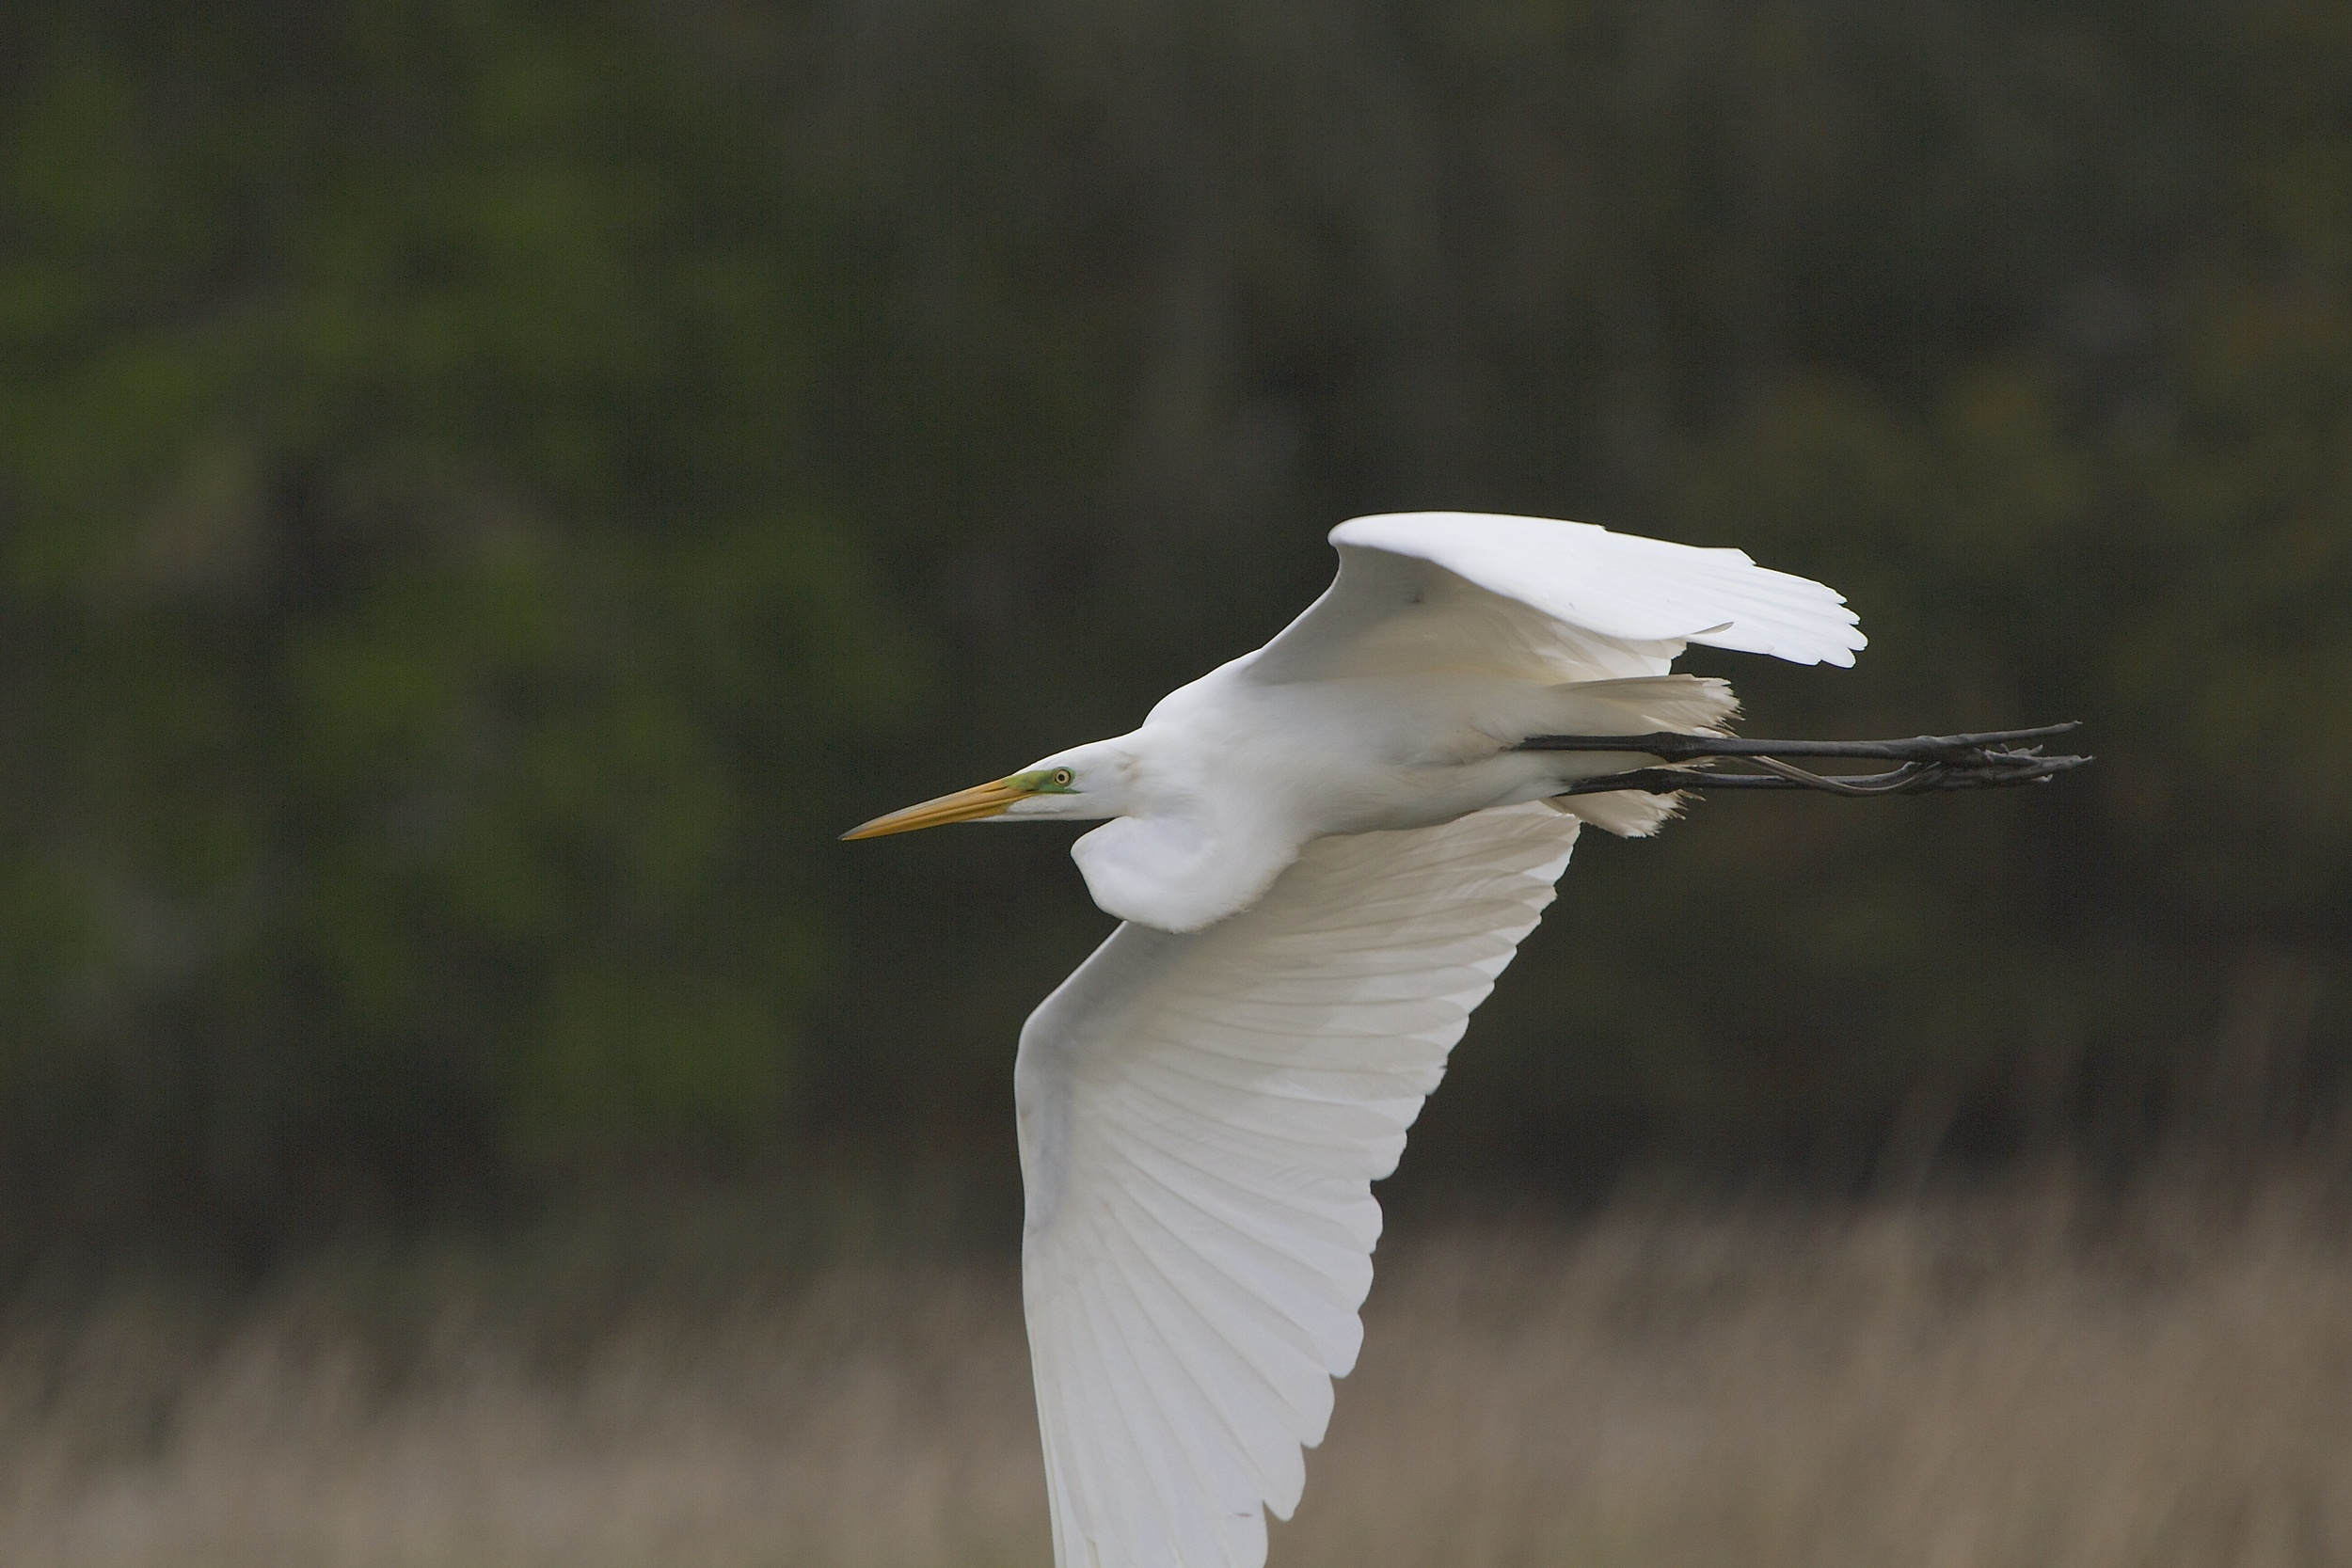 The Great Egret is showing breeding colors of Green around the eyes.